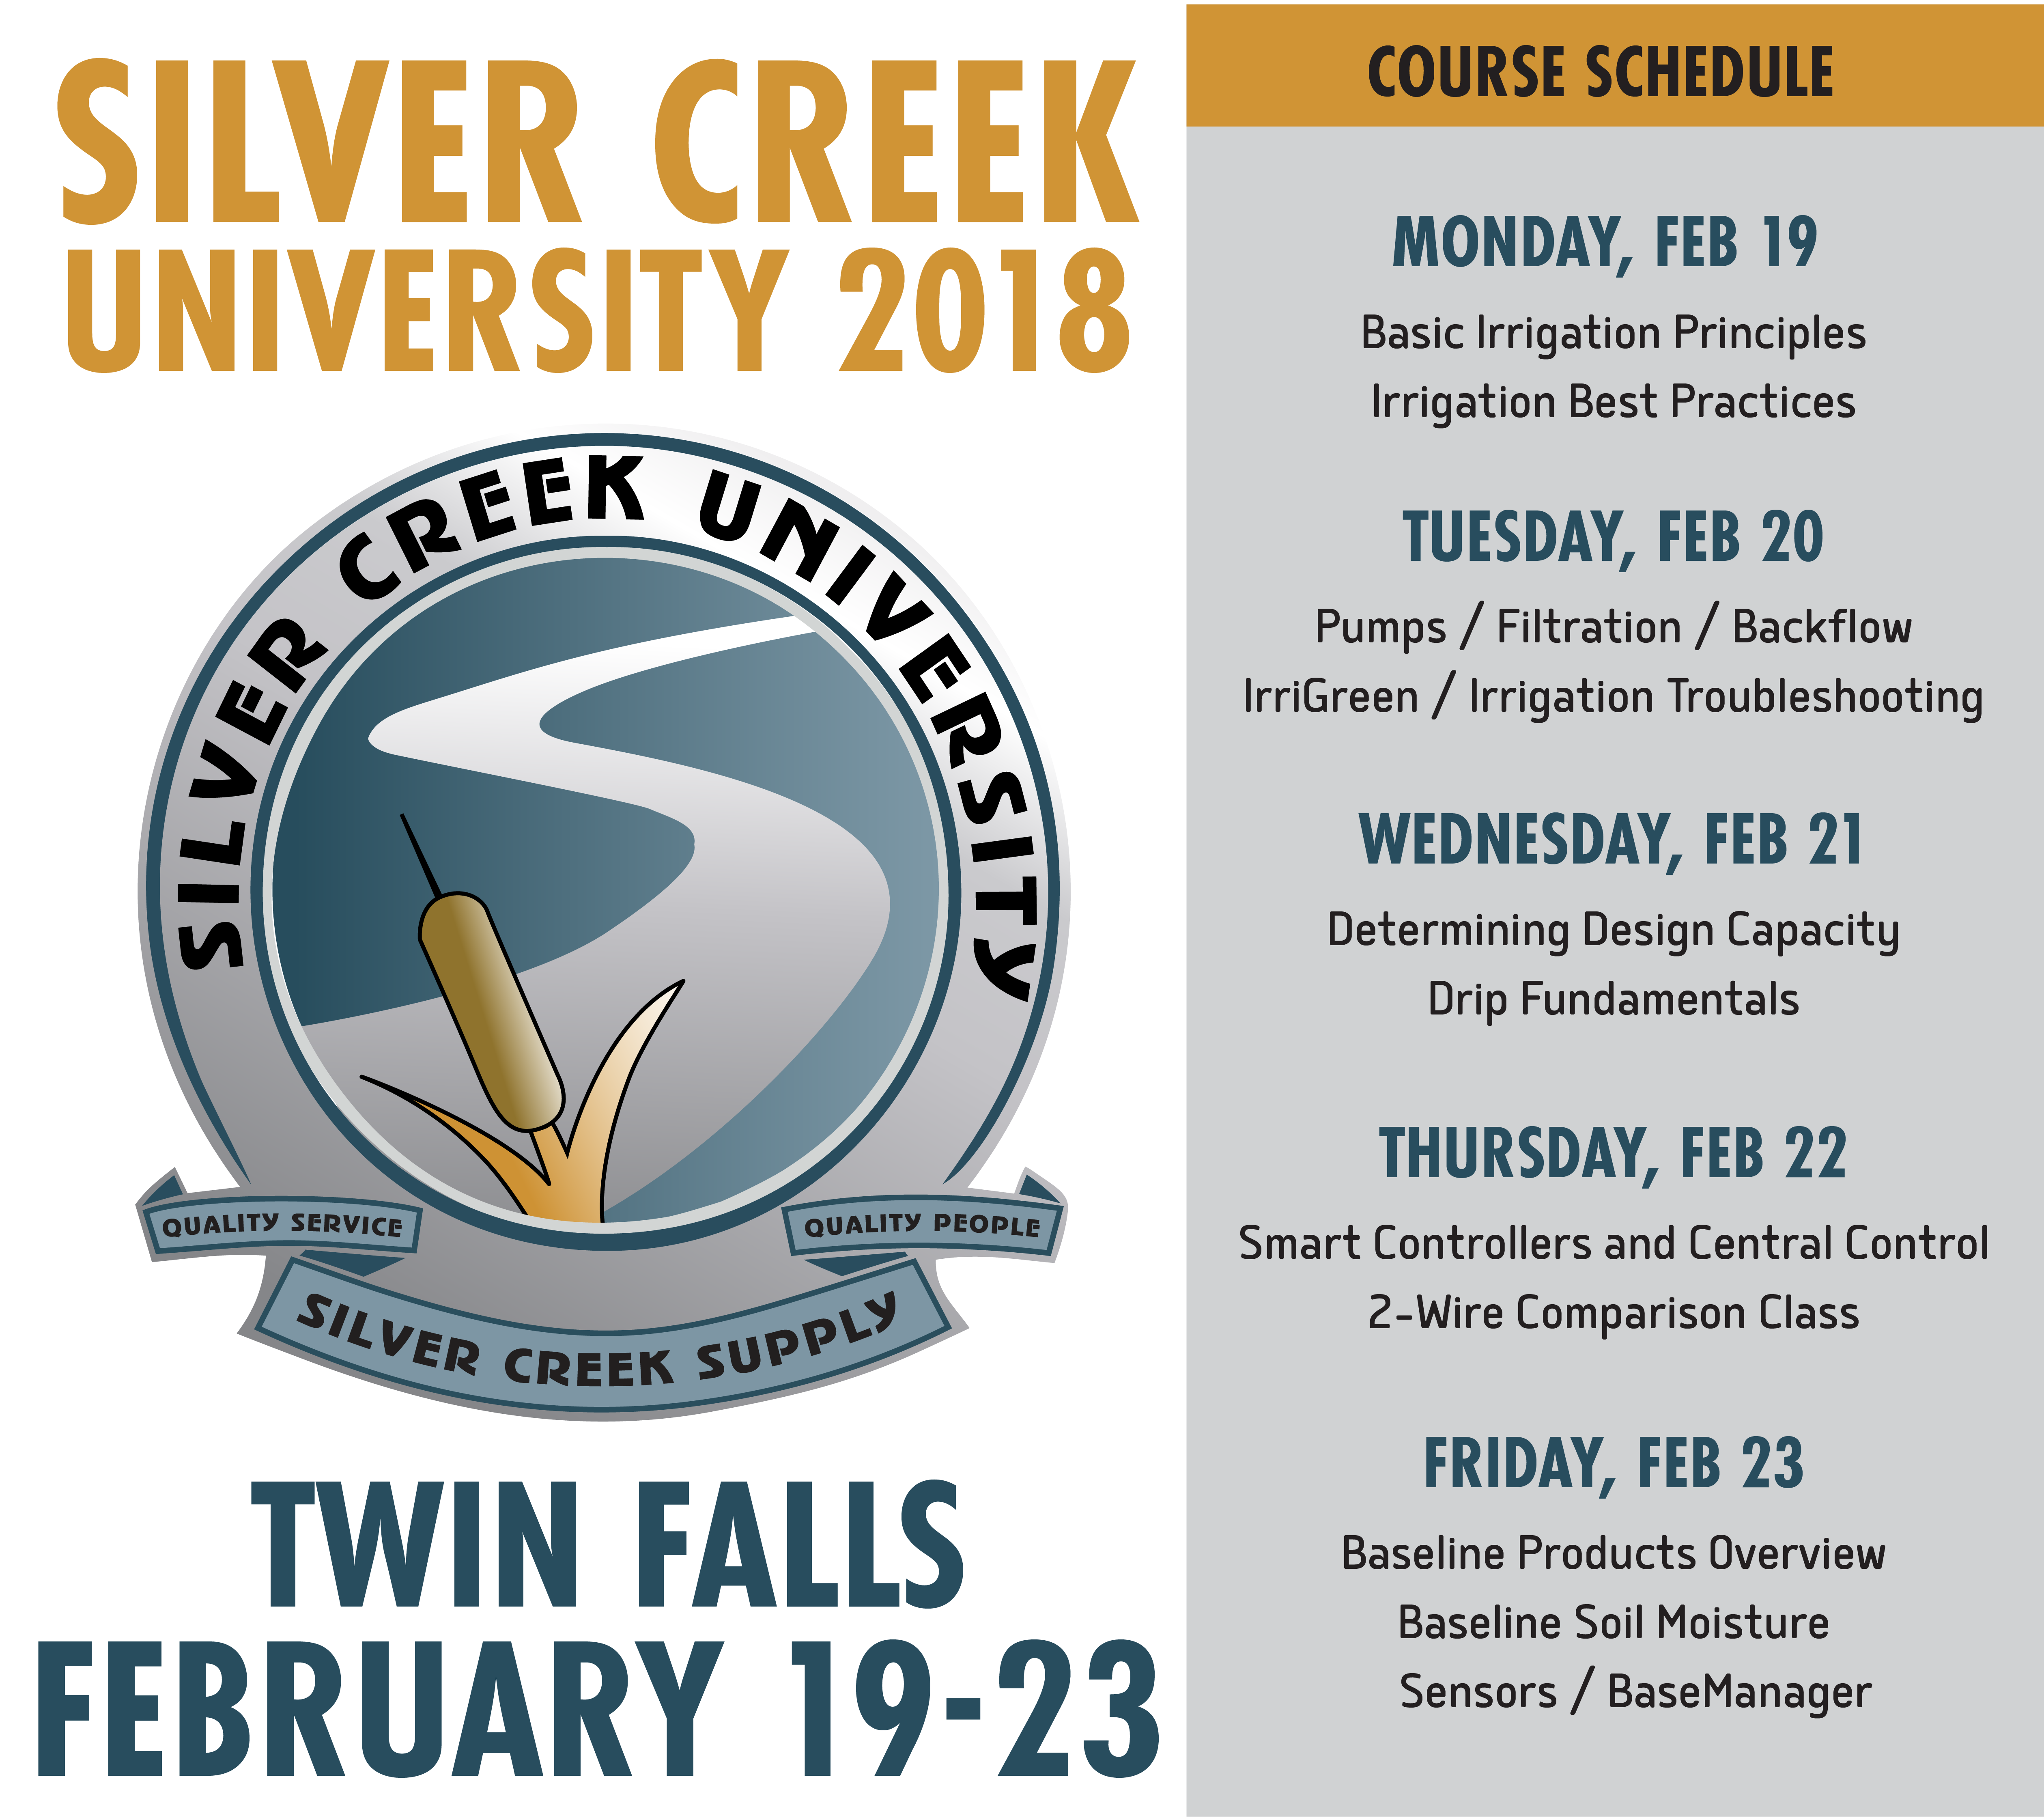 Silver Creek University - Twin Falls